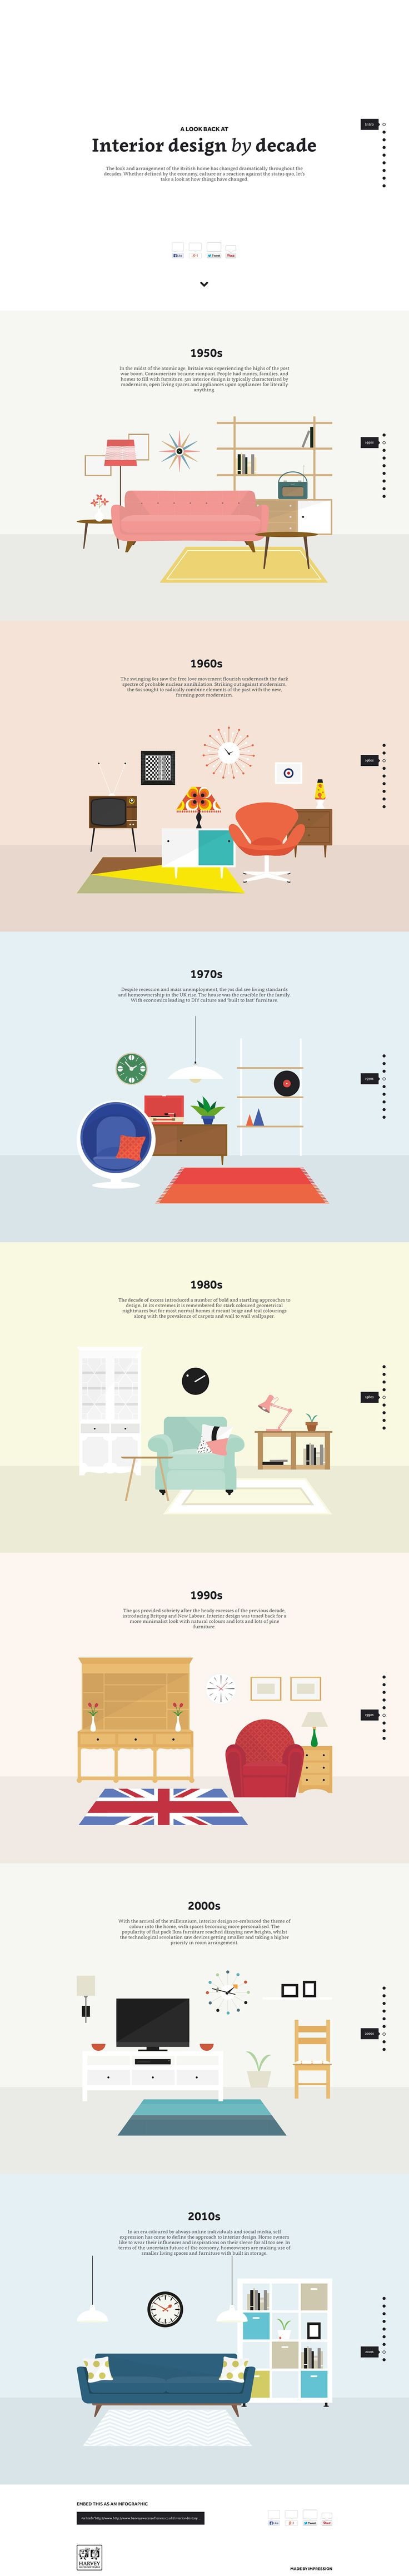 Lovely Informational One Pager Showcasing How Interior Design Has Changed Over The Previous Decades Long Page Website Is Really Well Done With